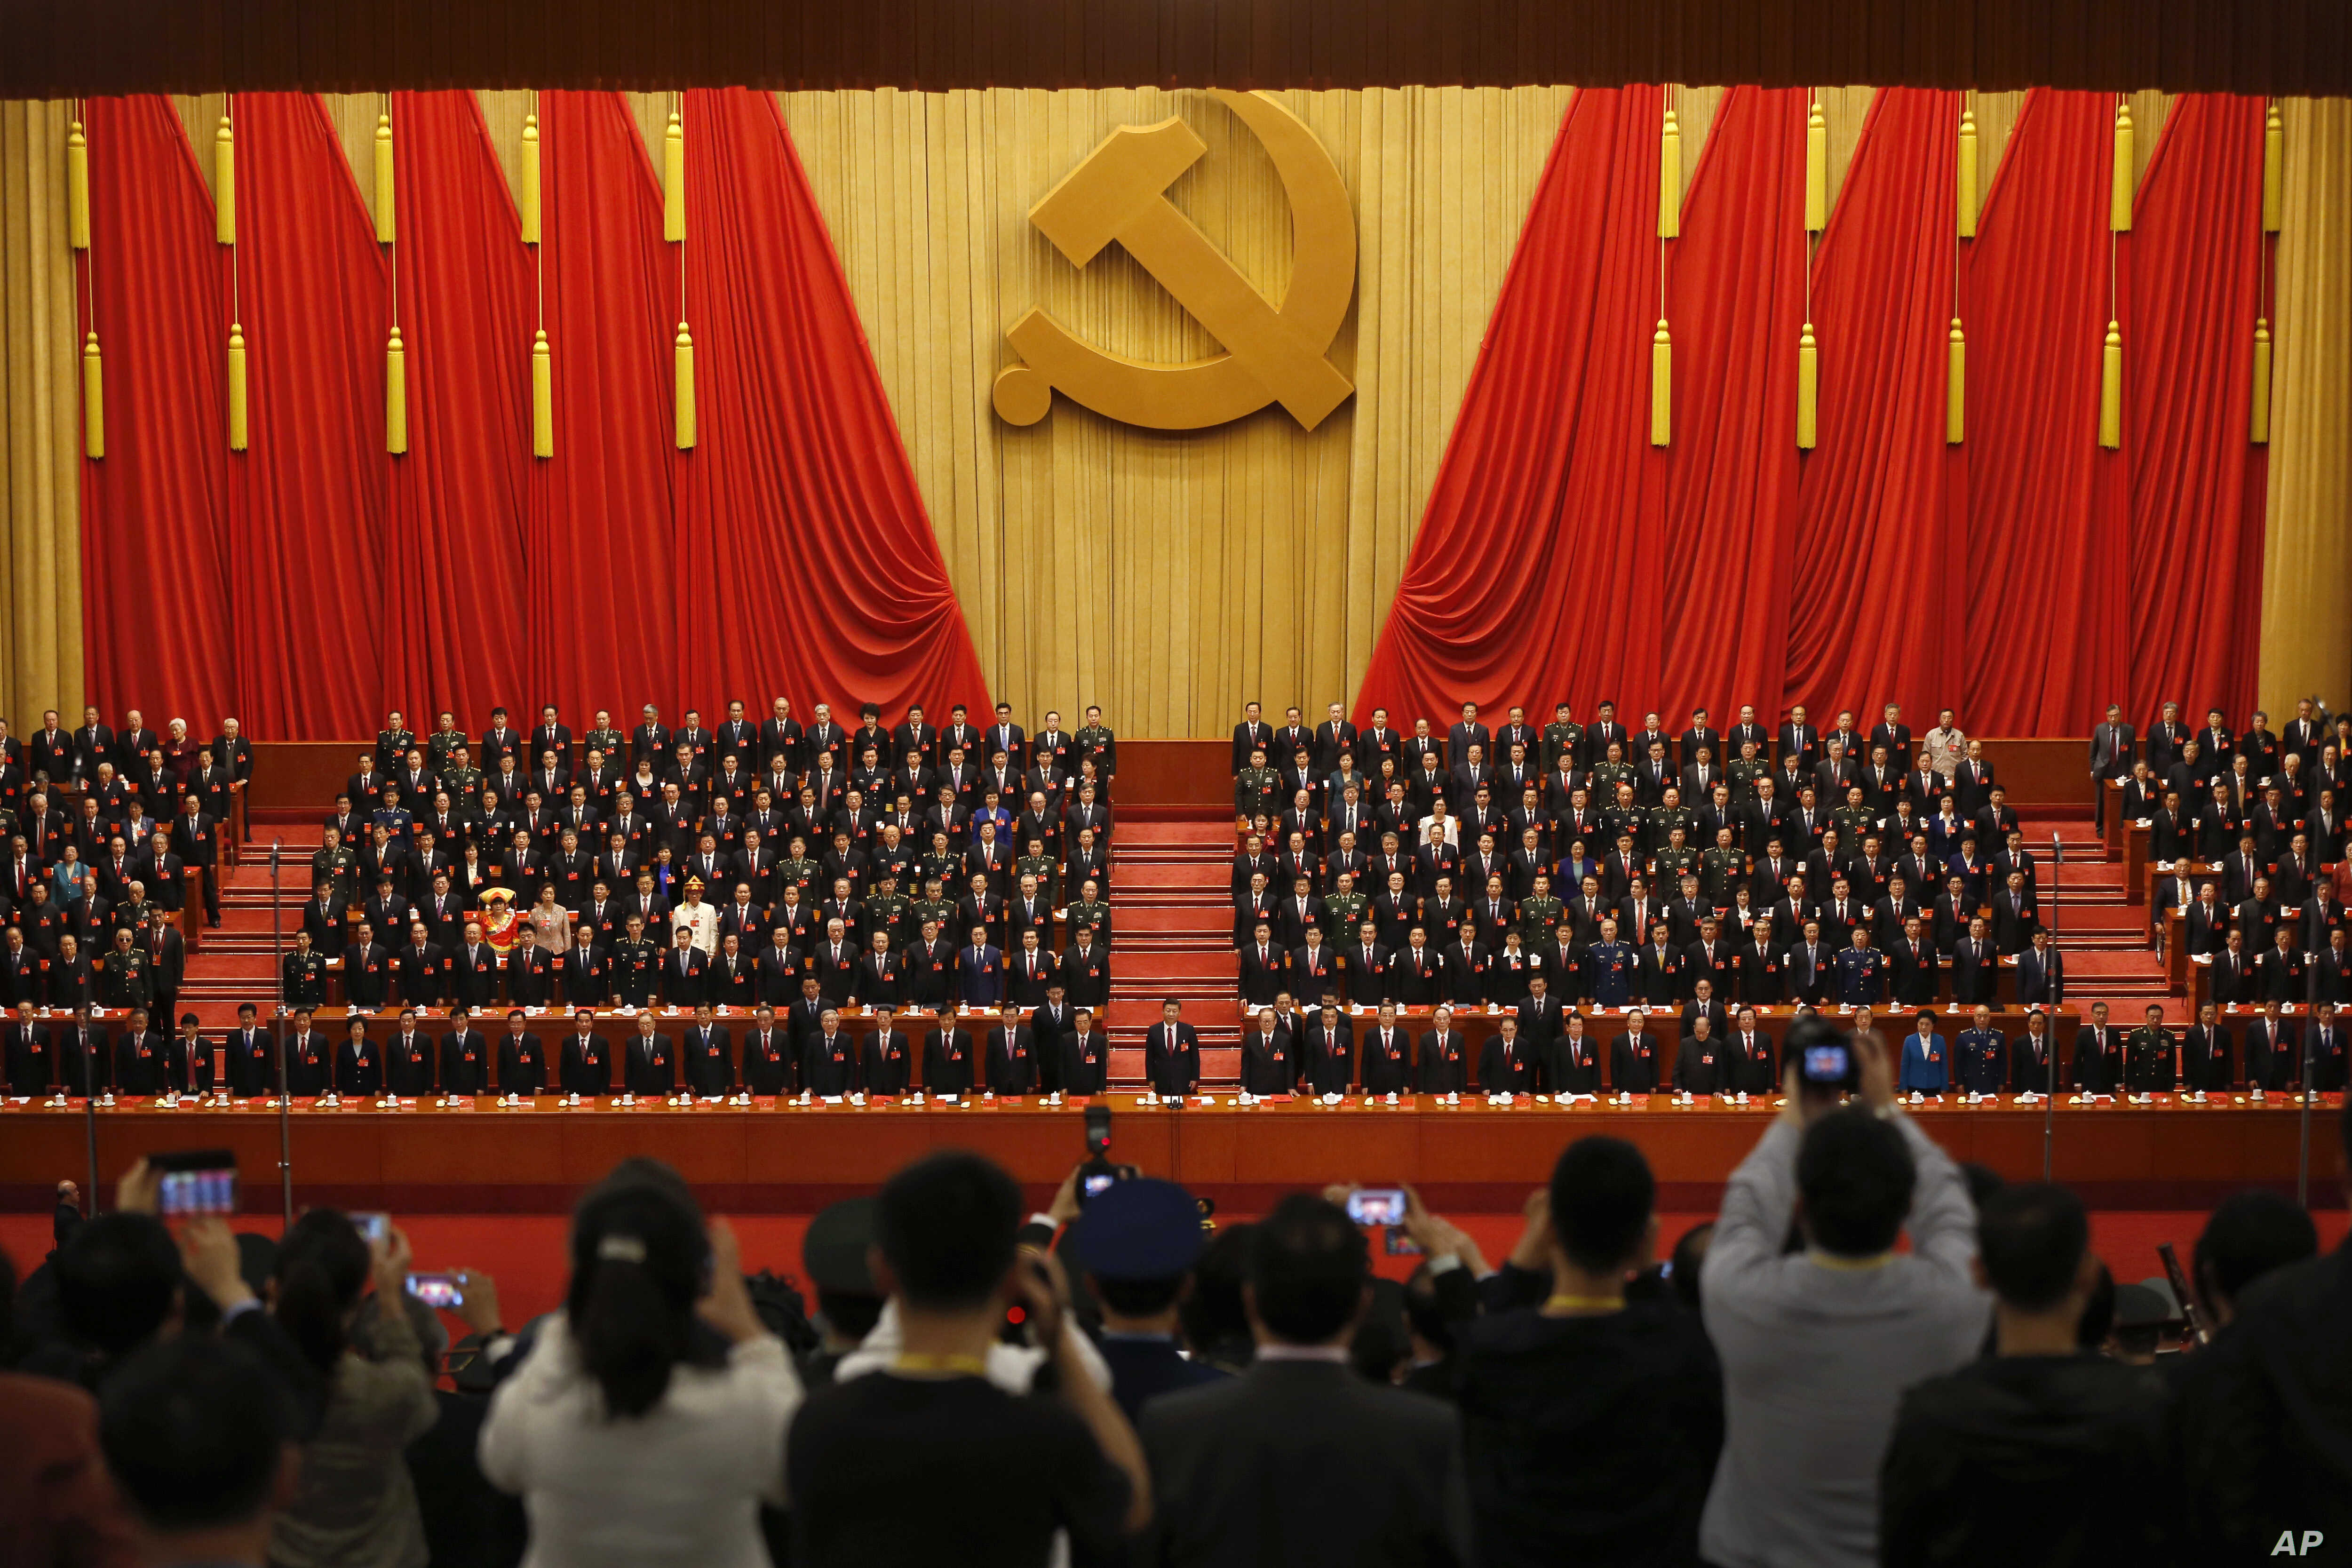 FILE - Journalists take pictures of Chinese President Xi Jinping, front row center, and other Communist Party officials at Party Congress at the Great Hall of the People in Beijing, Oct. 24, 2017.